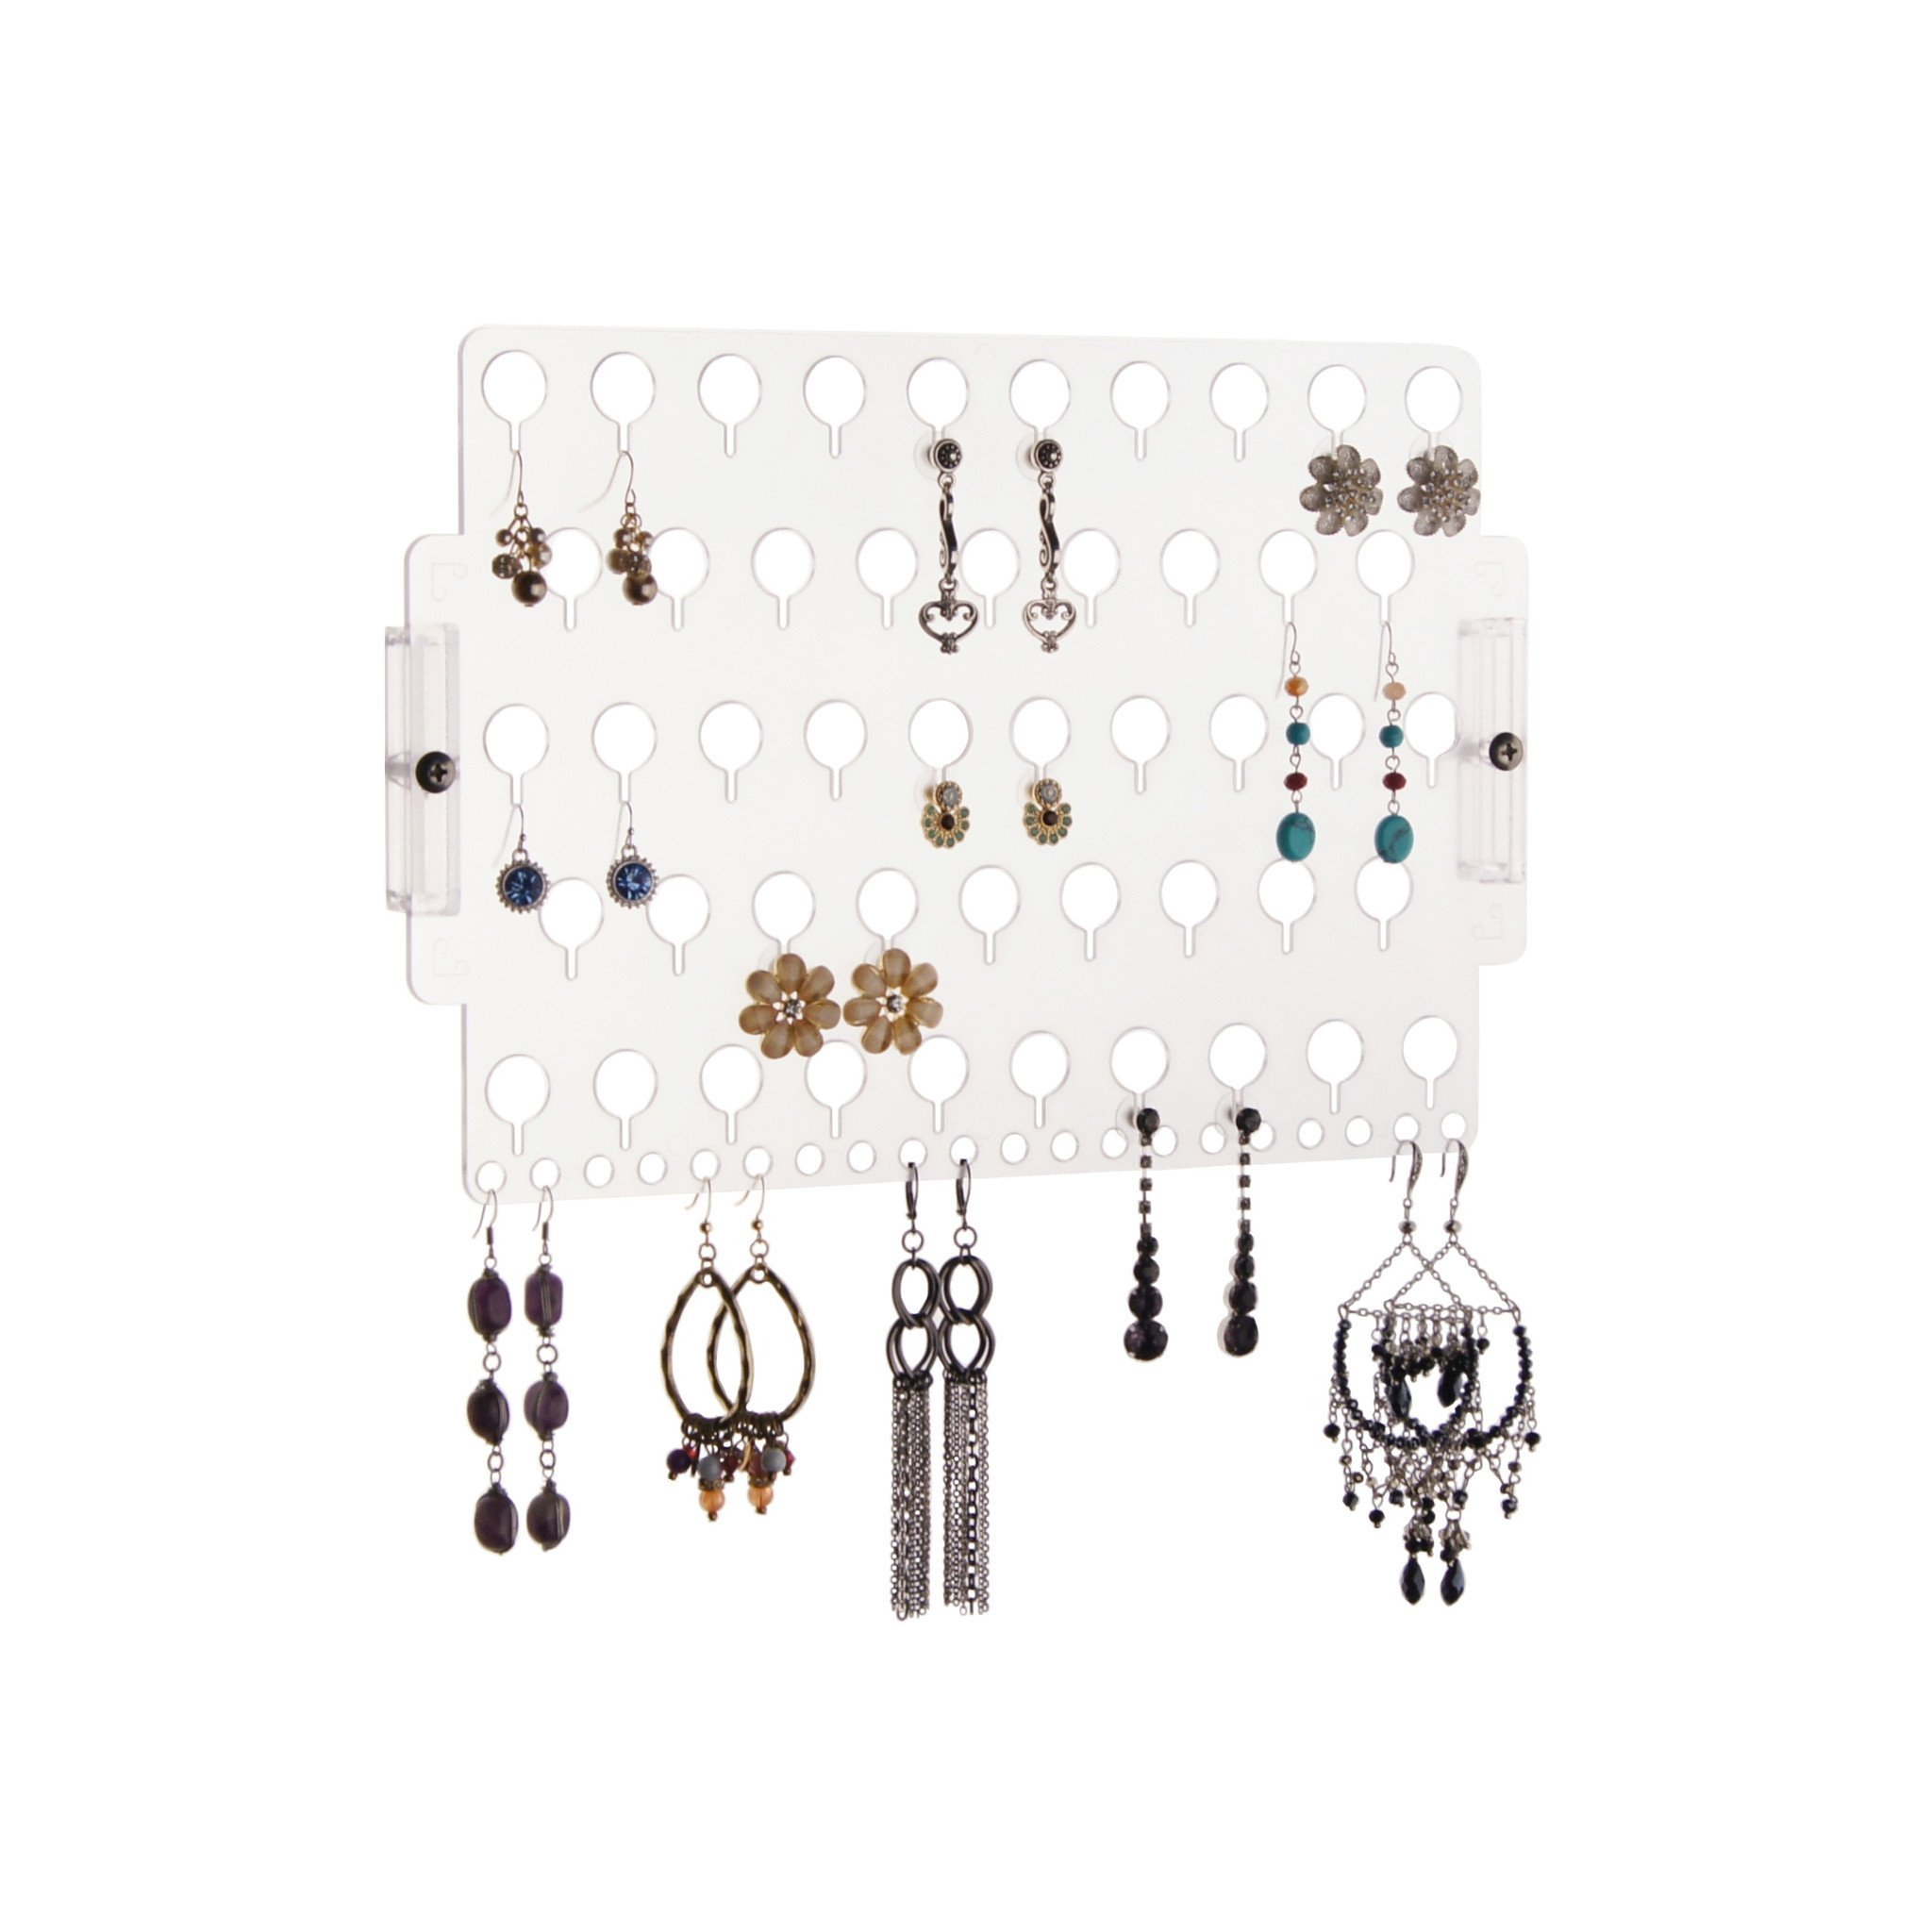 Earring Holder Organizer Wall Mount Jewelry Organizer Hanging Closet Storage Rack, Earring Angel Clear by Angelynn's Jewelry Organizers (Image #1)